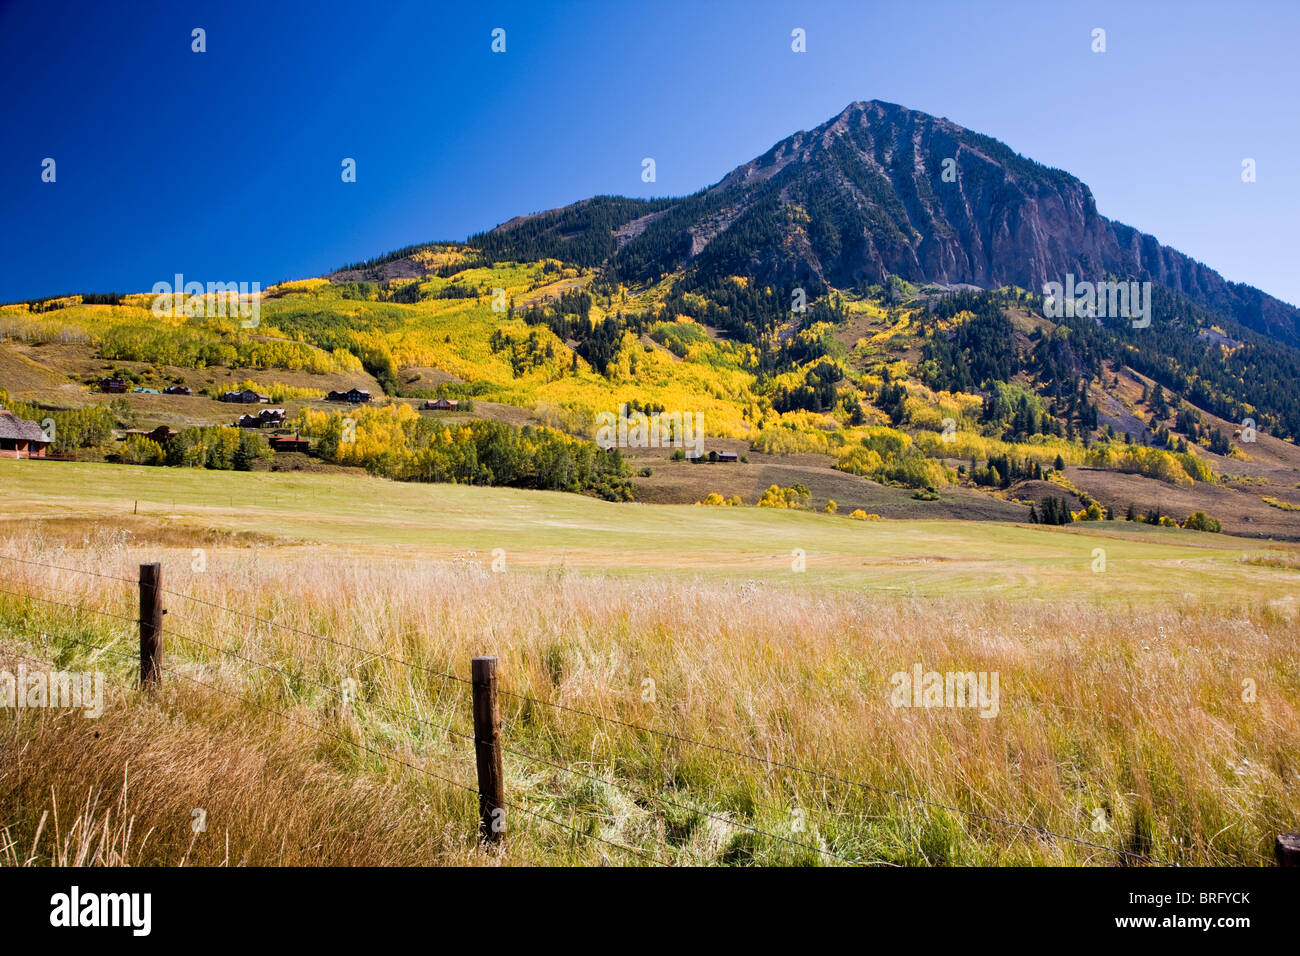 Autumn view of golden aspen leaves and Mount Crested Butte (12162'), Elk Mountains, Colorado, USA - Stock Image